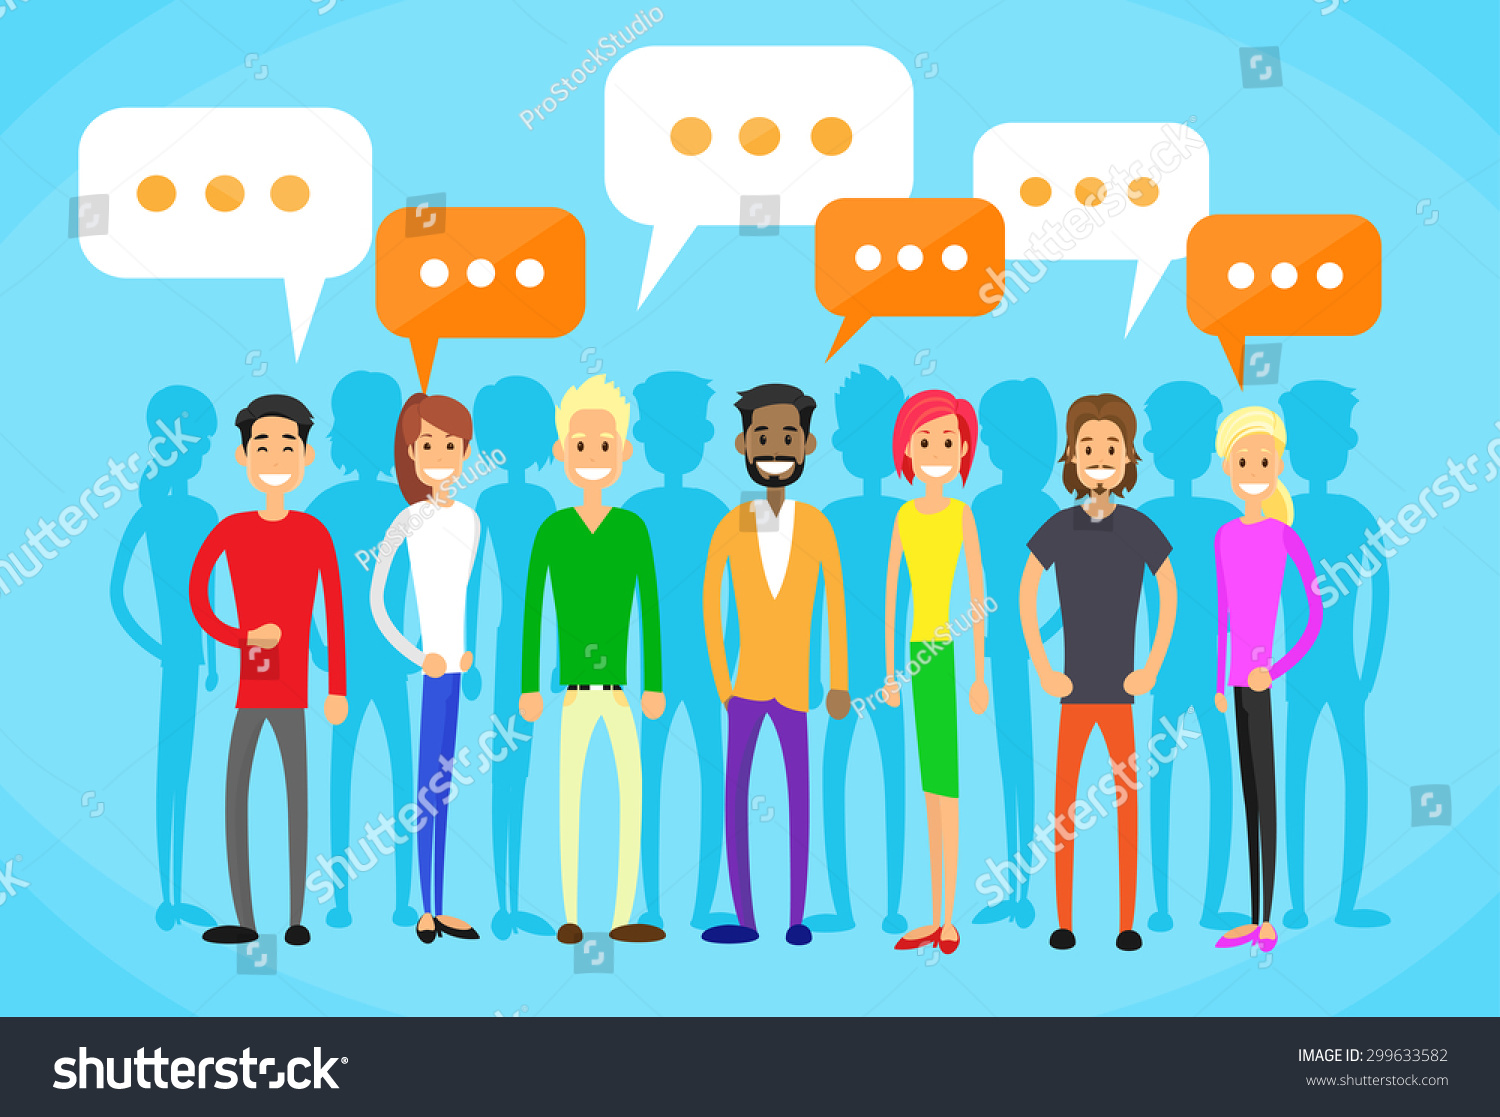 People Group Chat Social Network Communication Stock Vector ...